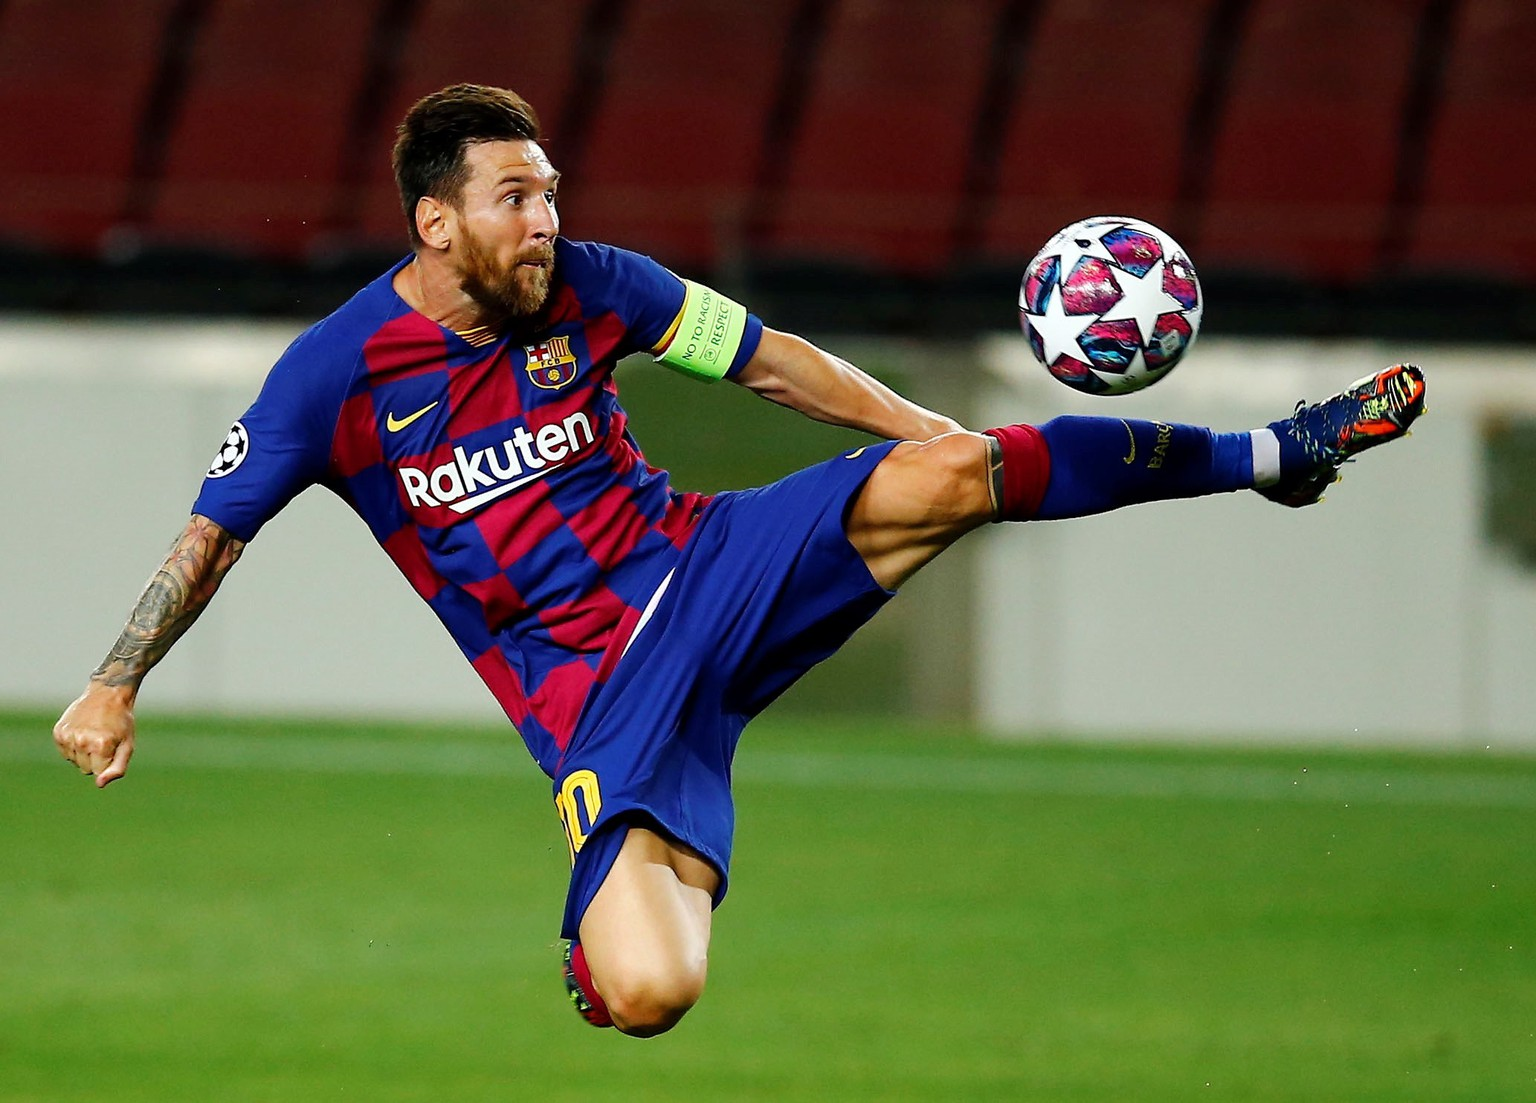 epa08592464 FC Barcelona's Lionel Messi in action during the UEFA Champions League round of 16 second leg soccer match between FC Barcelona and SCC Napoli in Barcelona, Catalonia, north eastern Spain, 08 August 2020.  EPA/Enric Fontcuberta